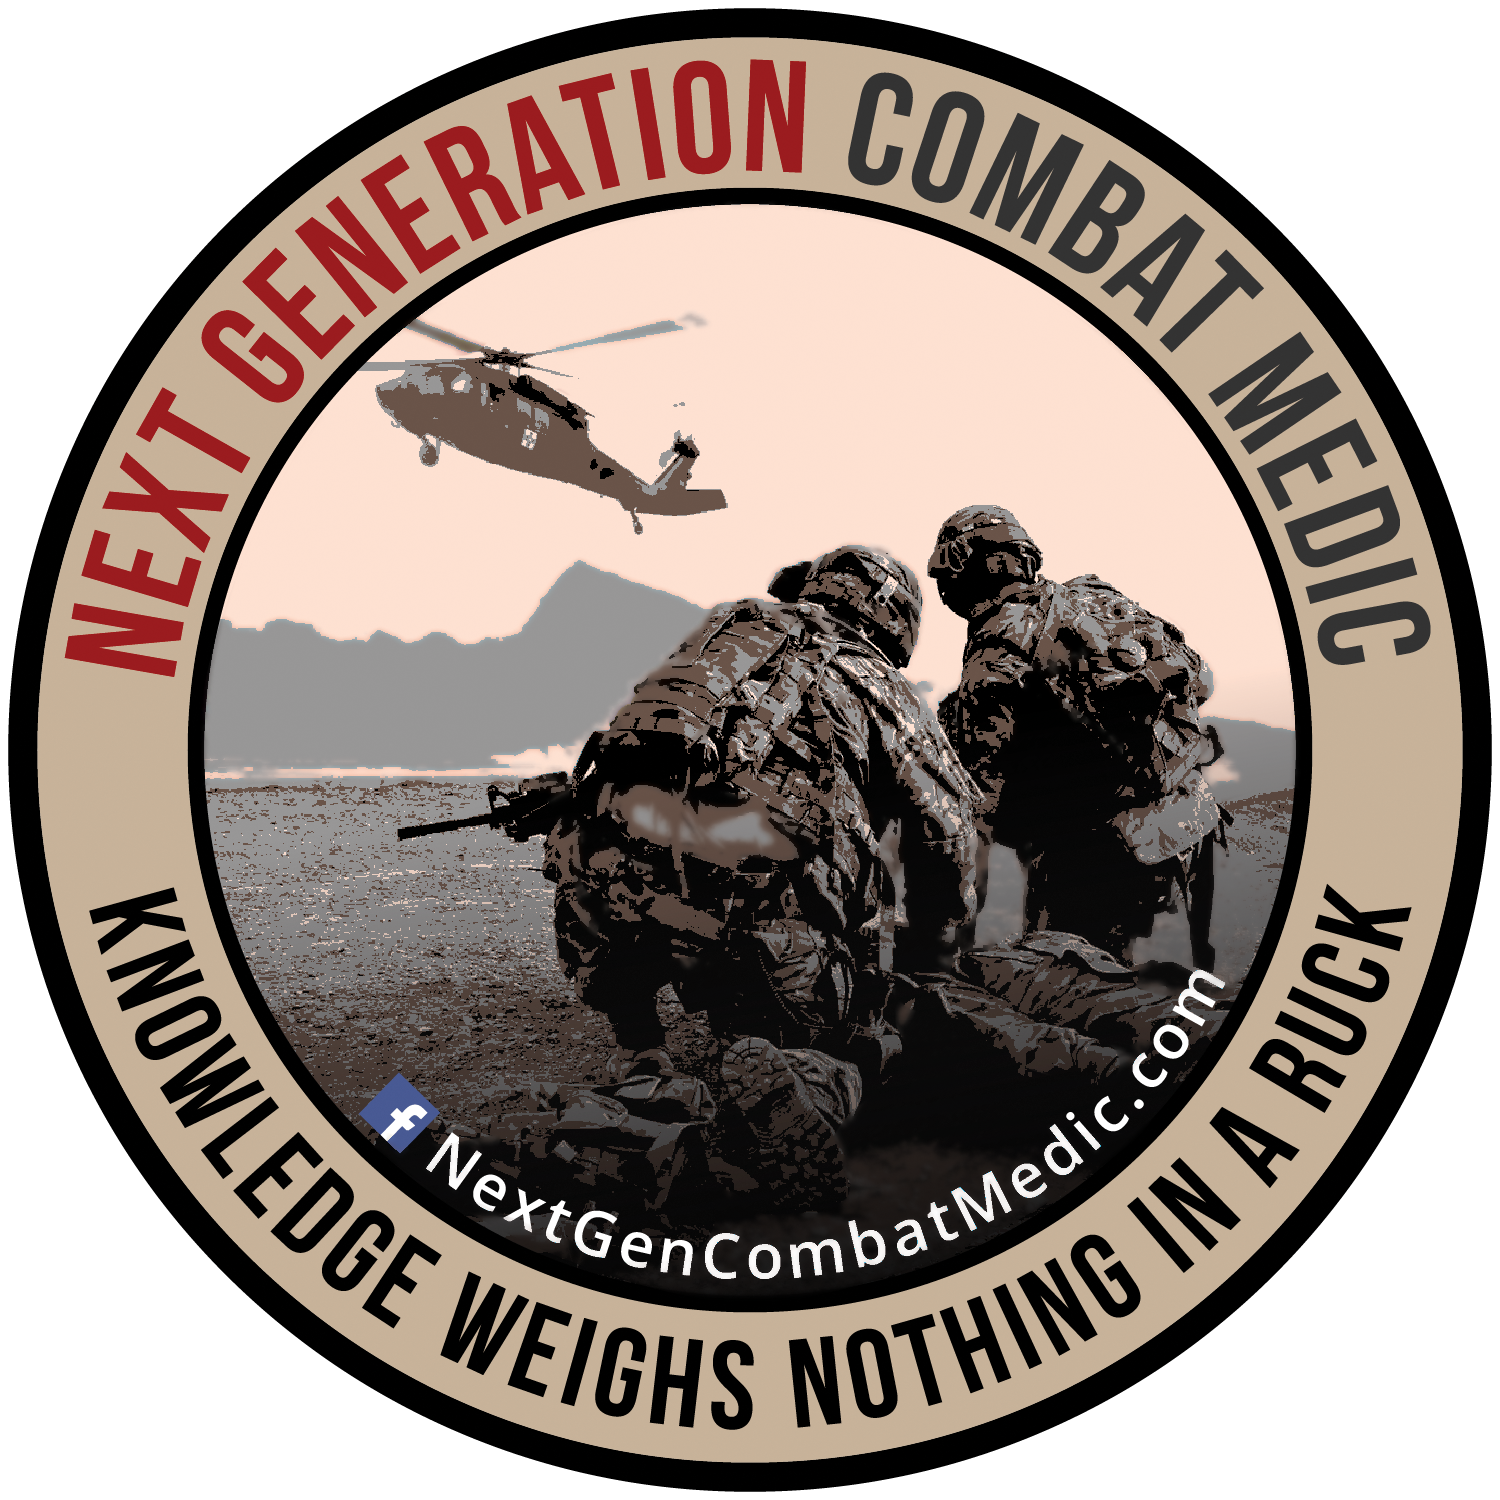 Prolonged Field Care for the Combat Medic – Next Generation Combat Medic